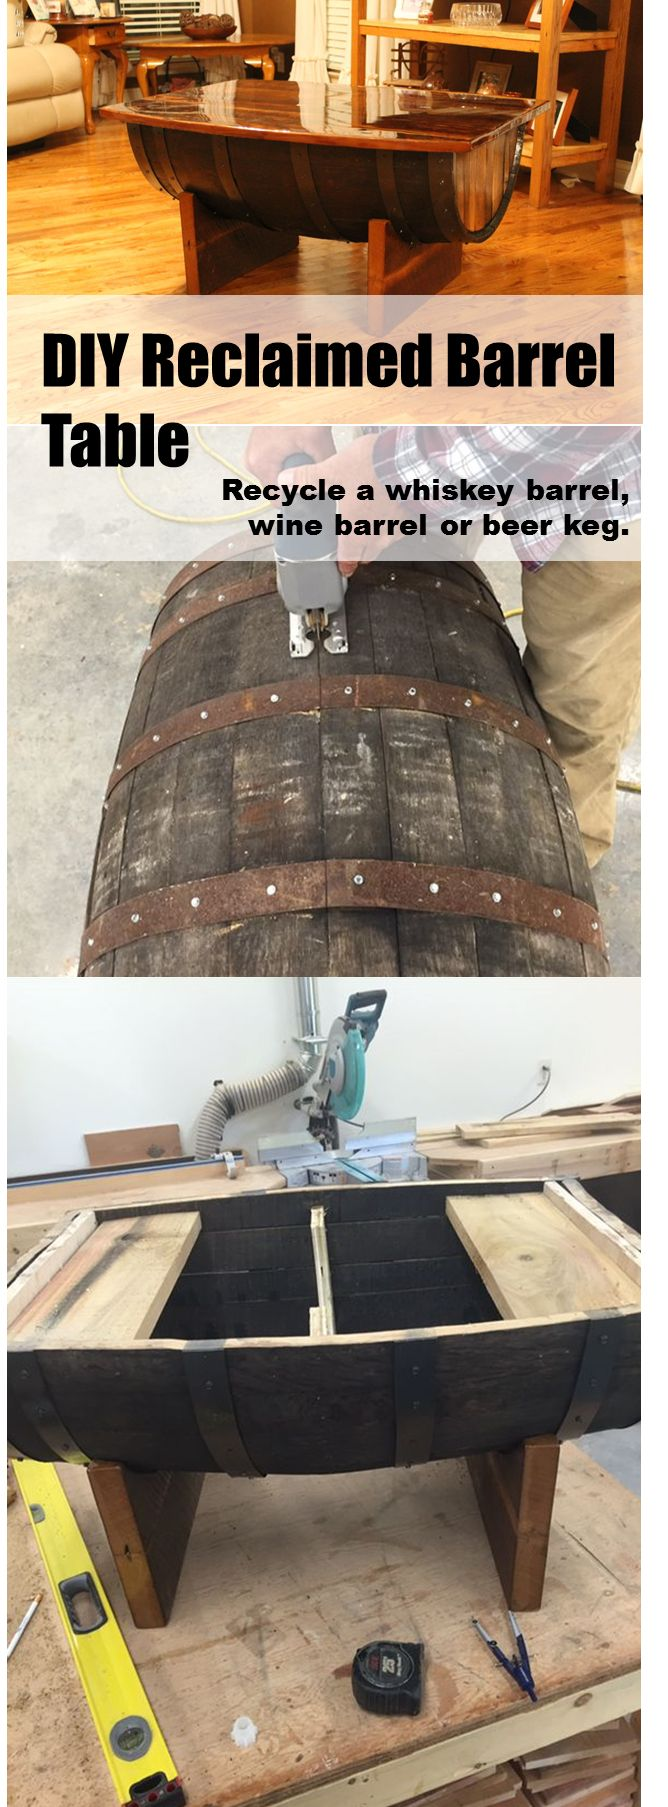 Perfect weekend project to recycle and old whiskey or wine barrel into a coffee table.